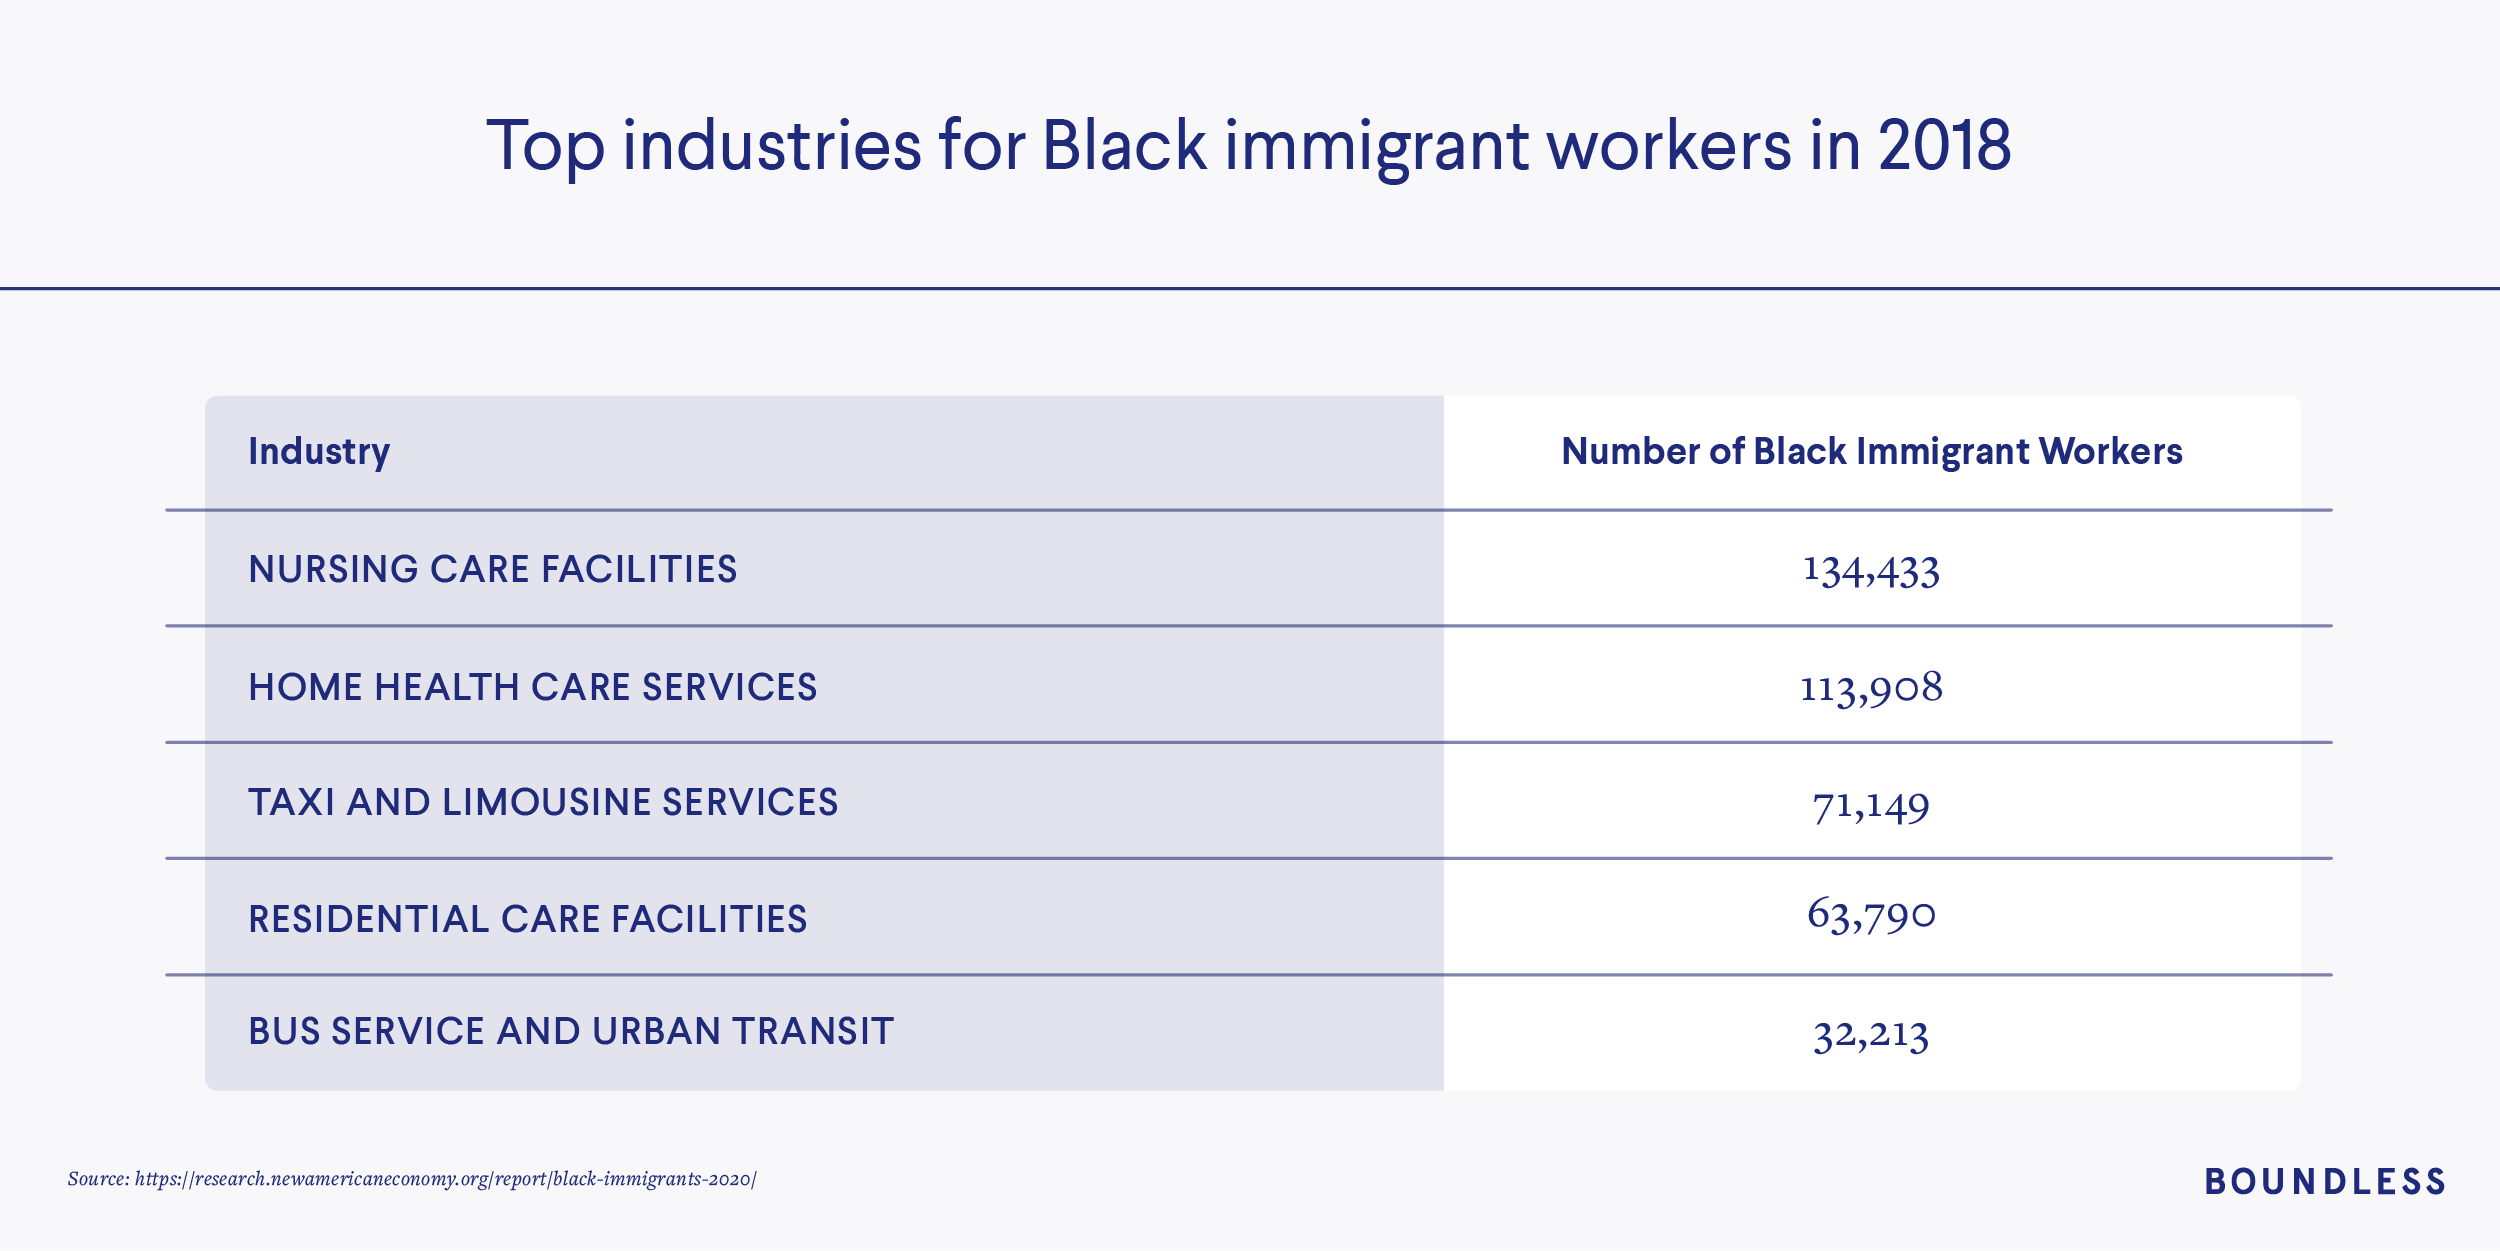 Top industries for Black immigrant workers